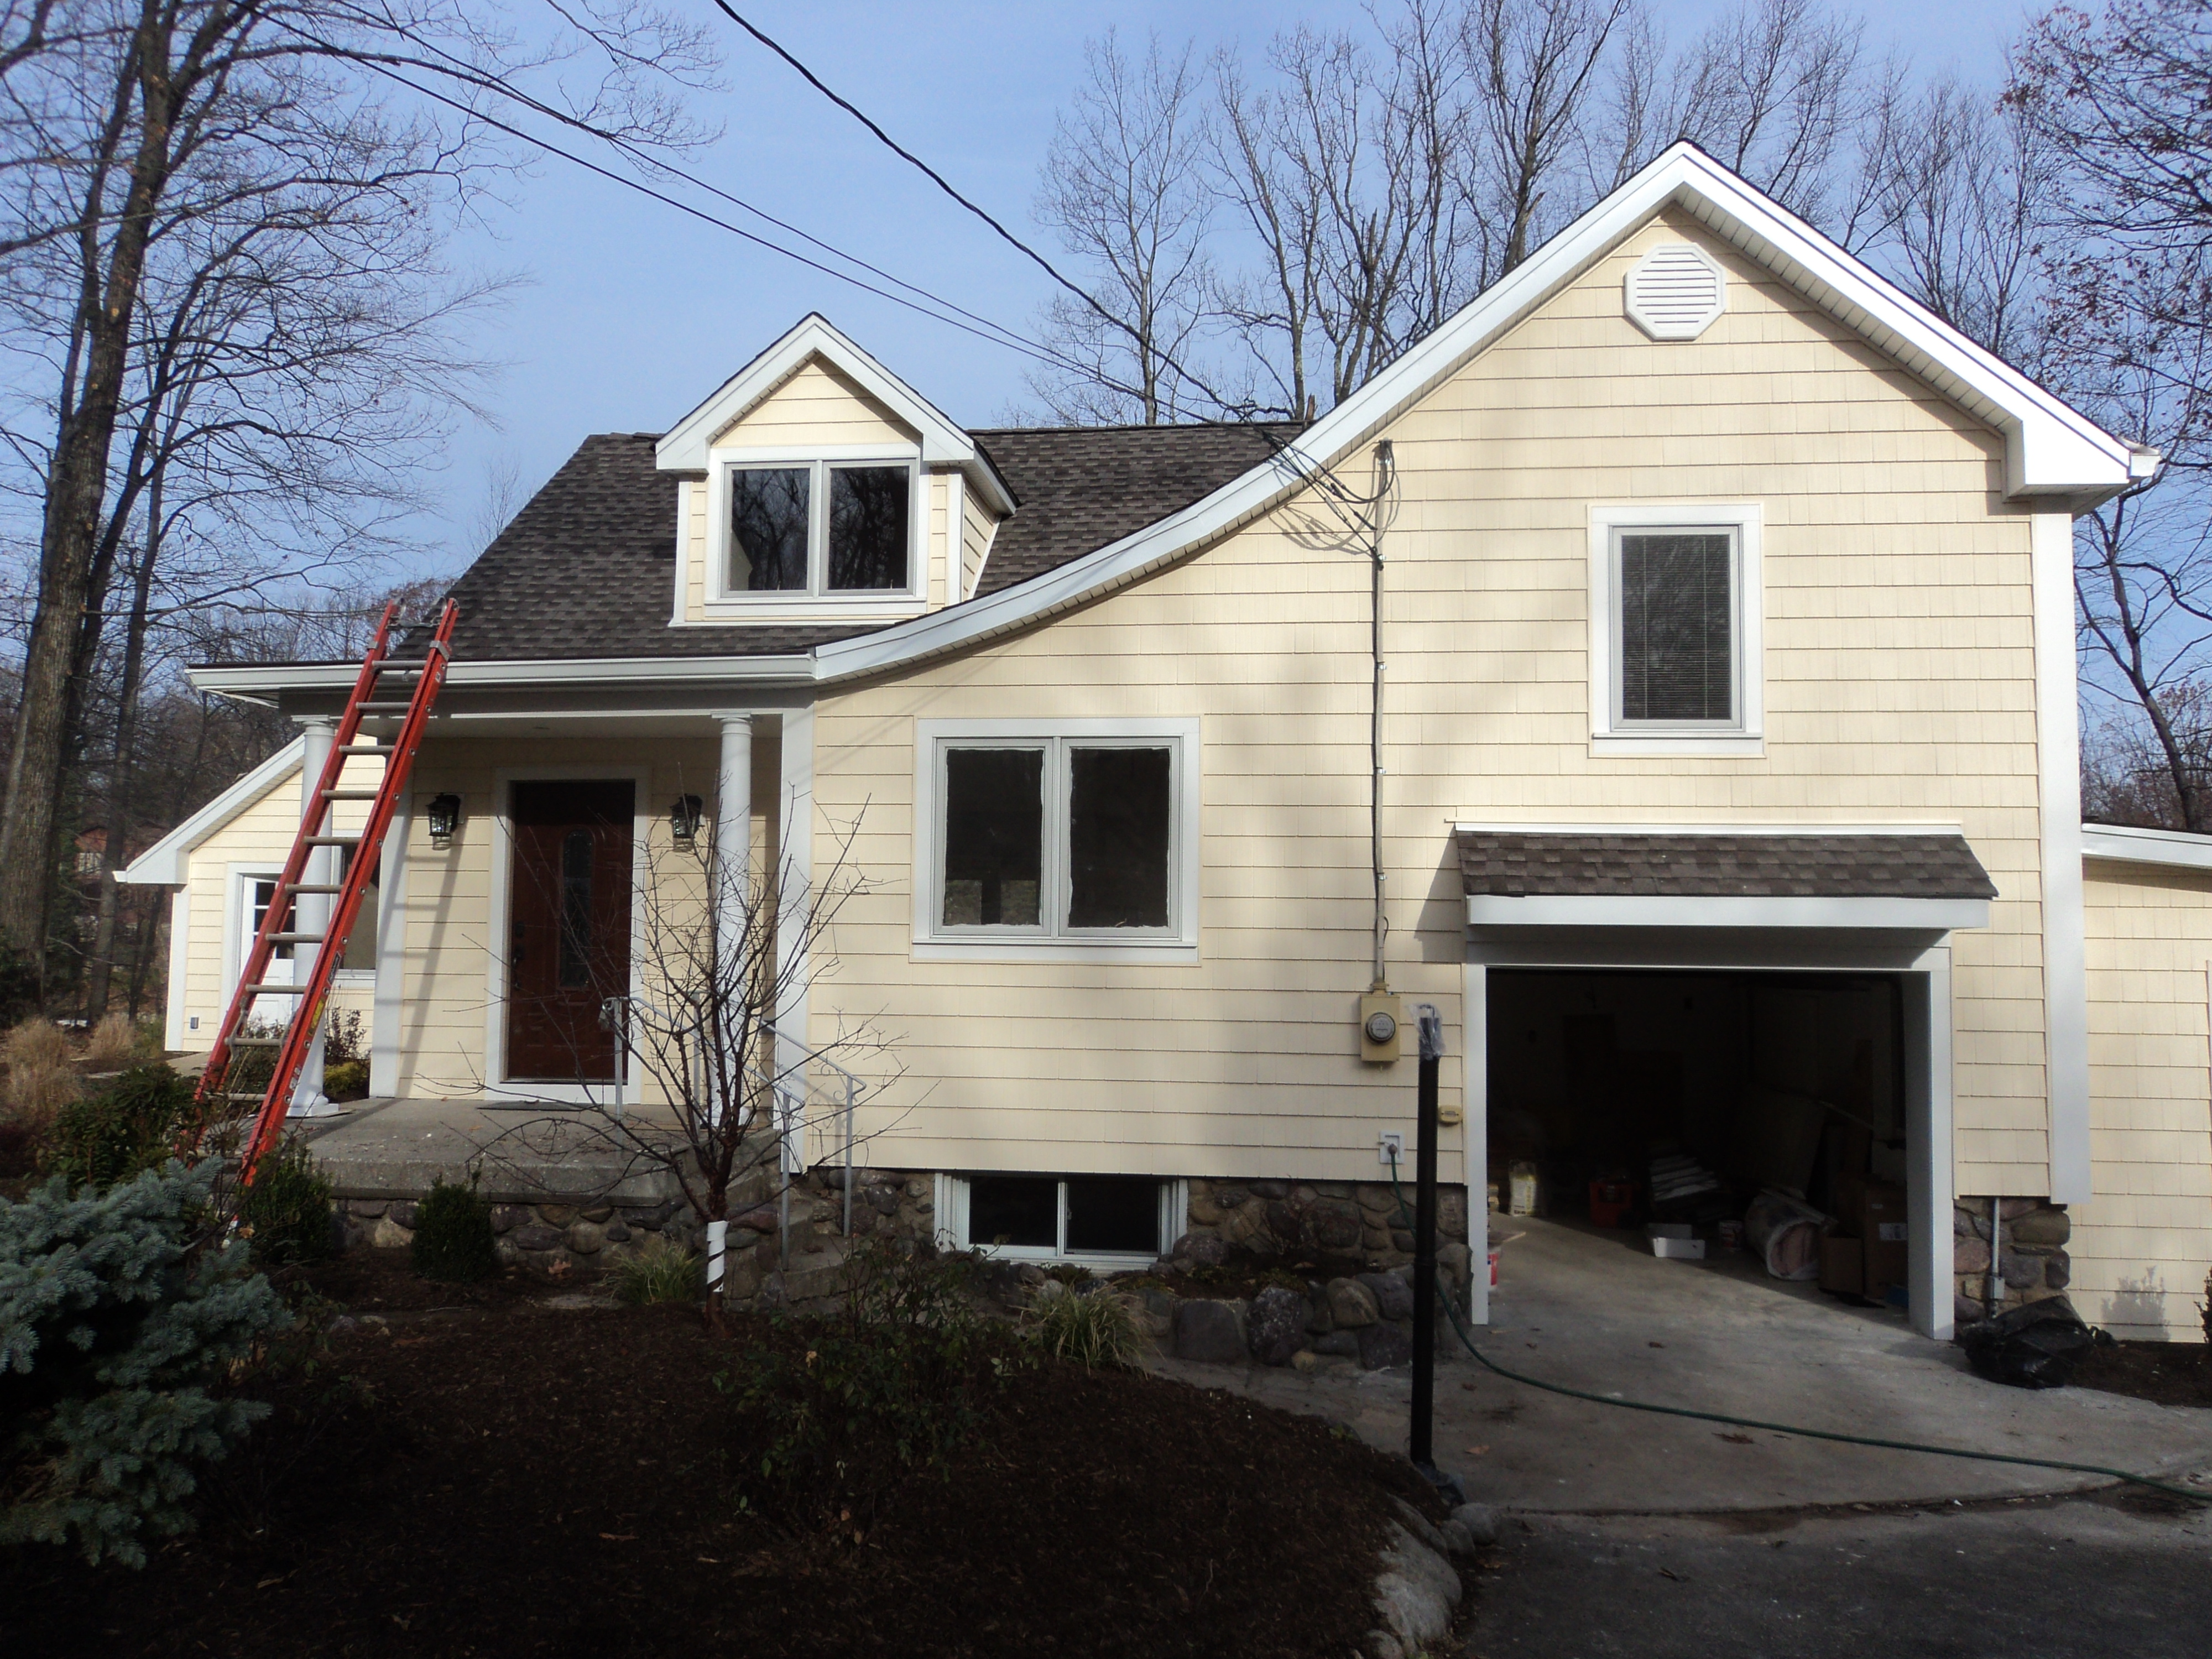 House siding types in essex county nj west orange roof for House siding styles